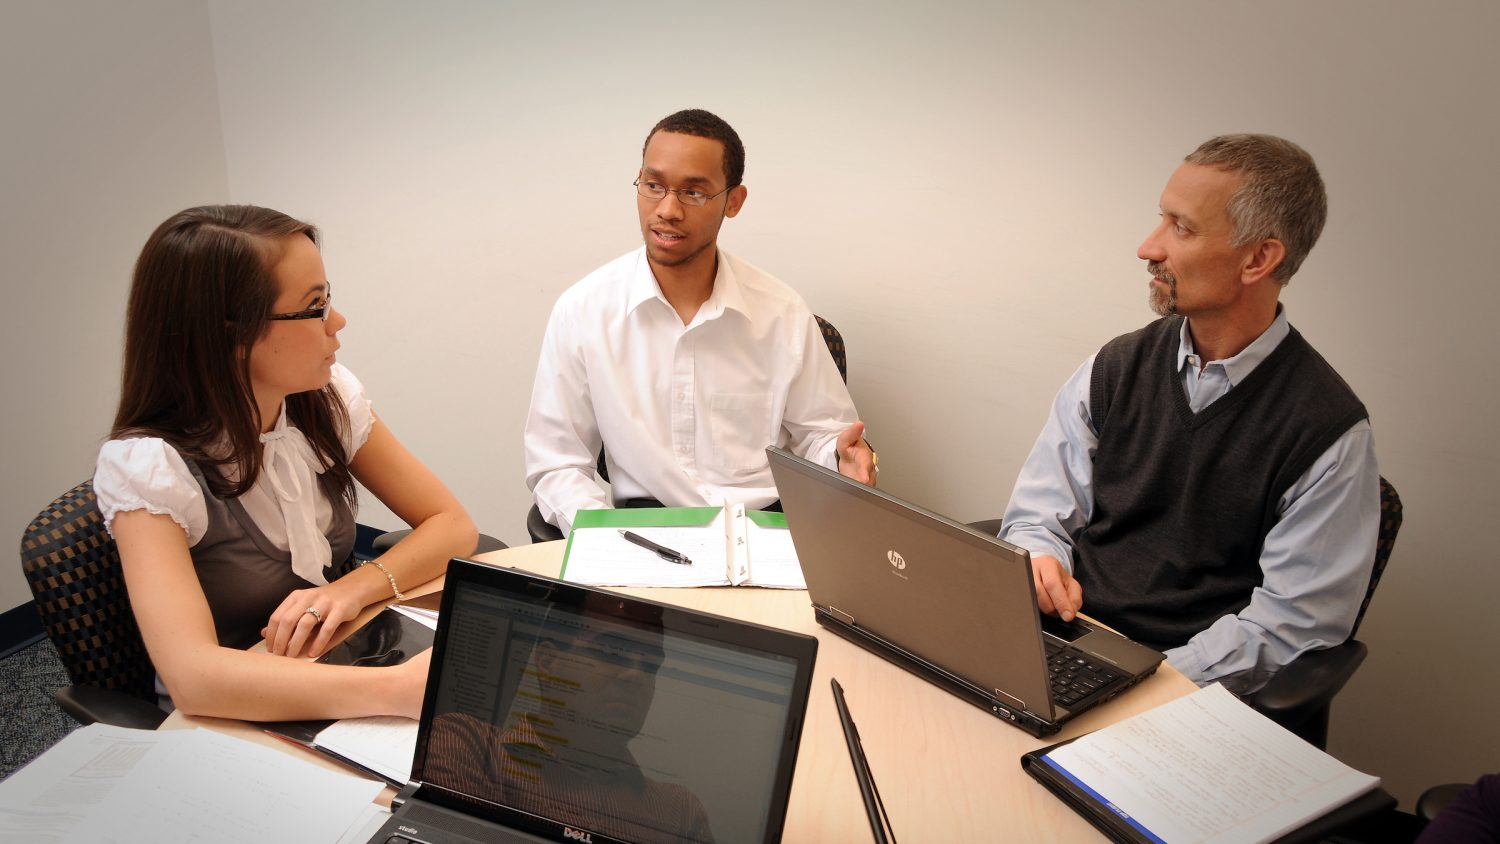 Three people in a meeting room